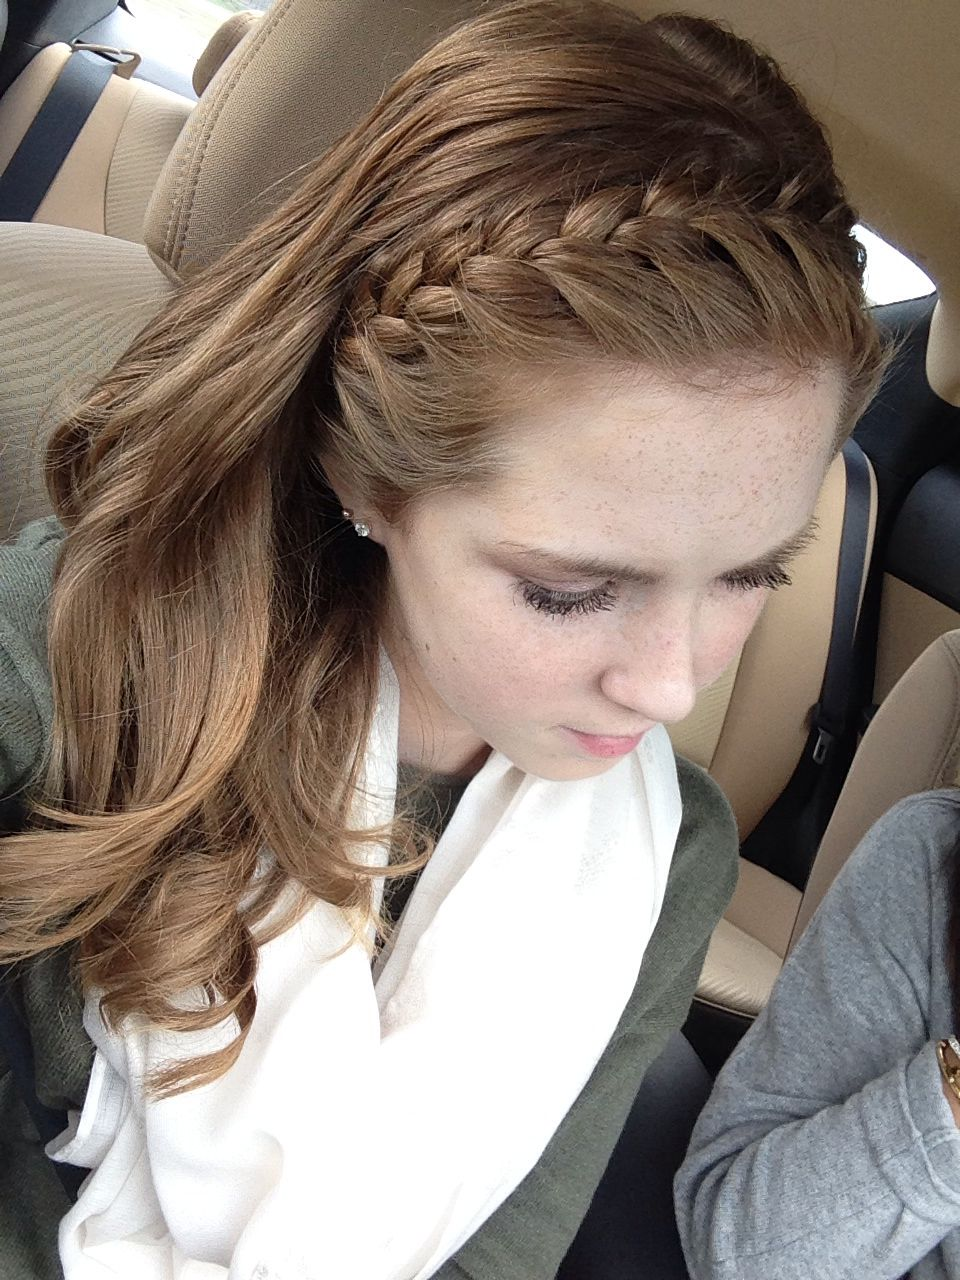 Pin By Alli Tate On Hair Loose Curls Hairstyles Braided Headband Hairstyle Hair Styles